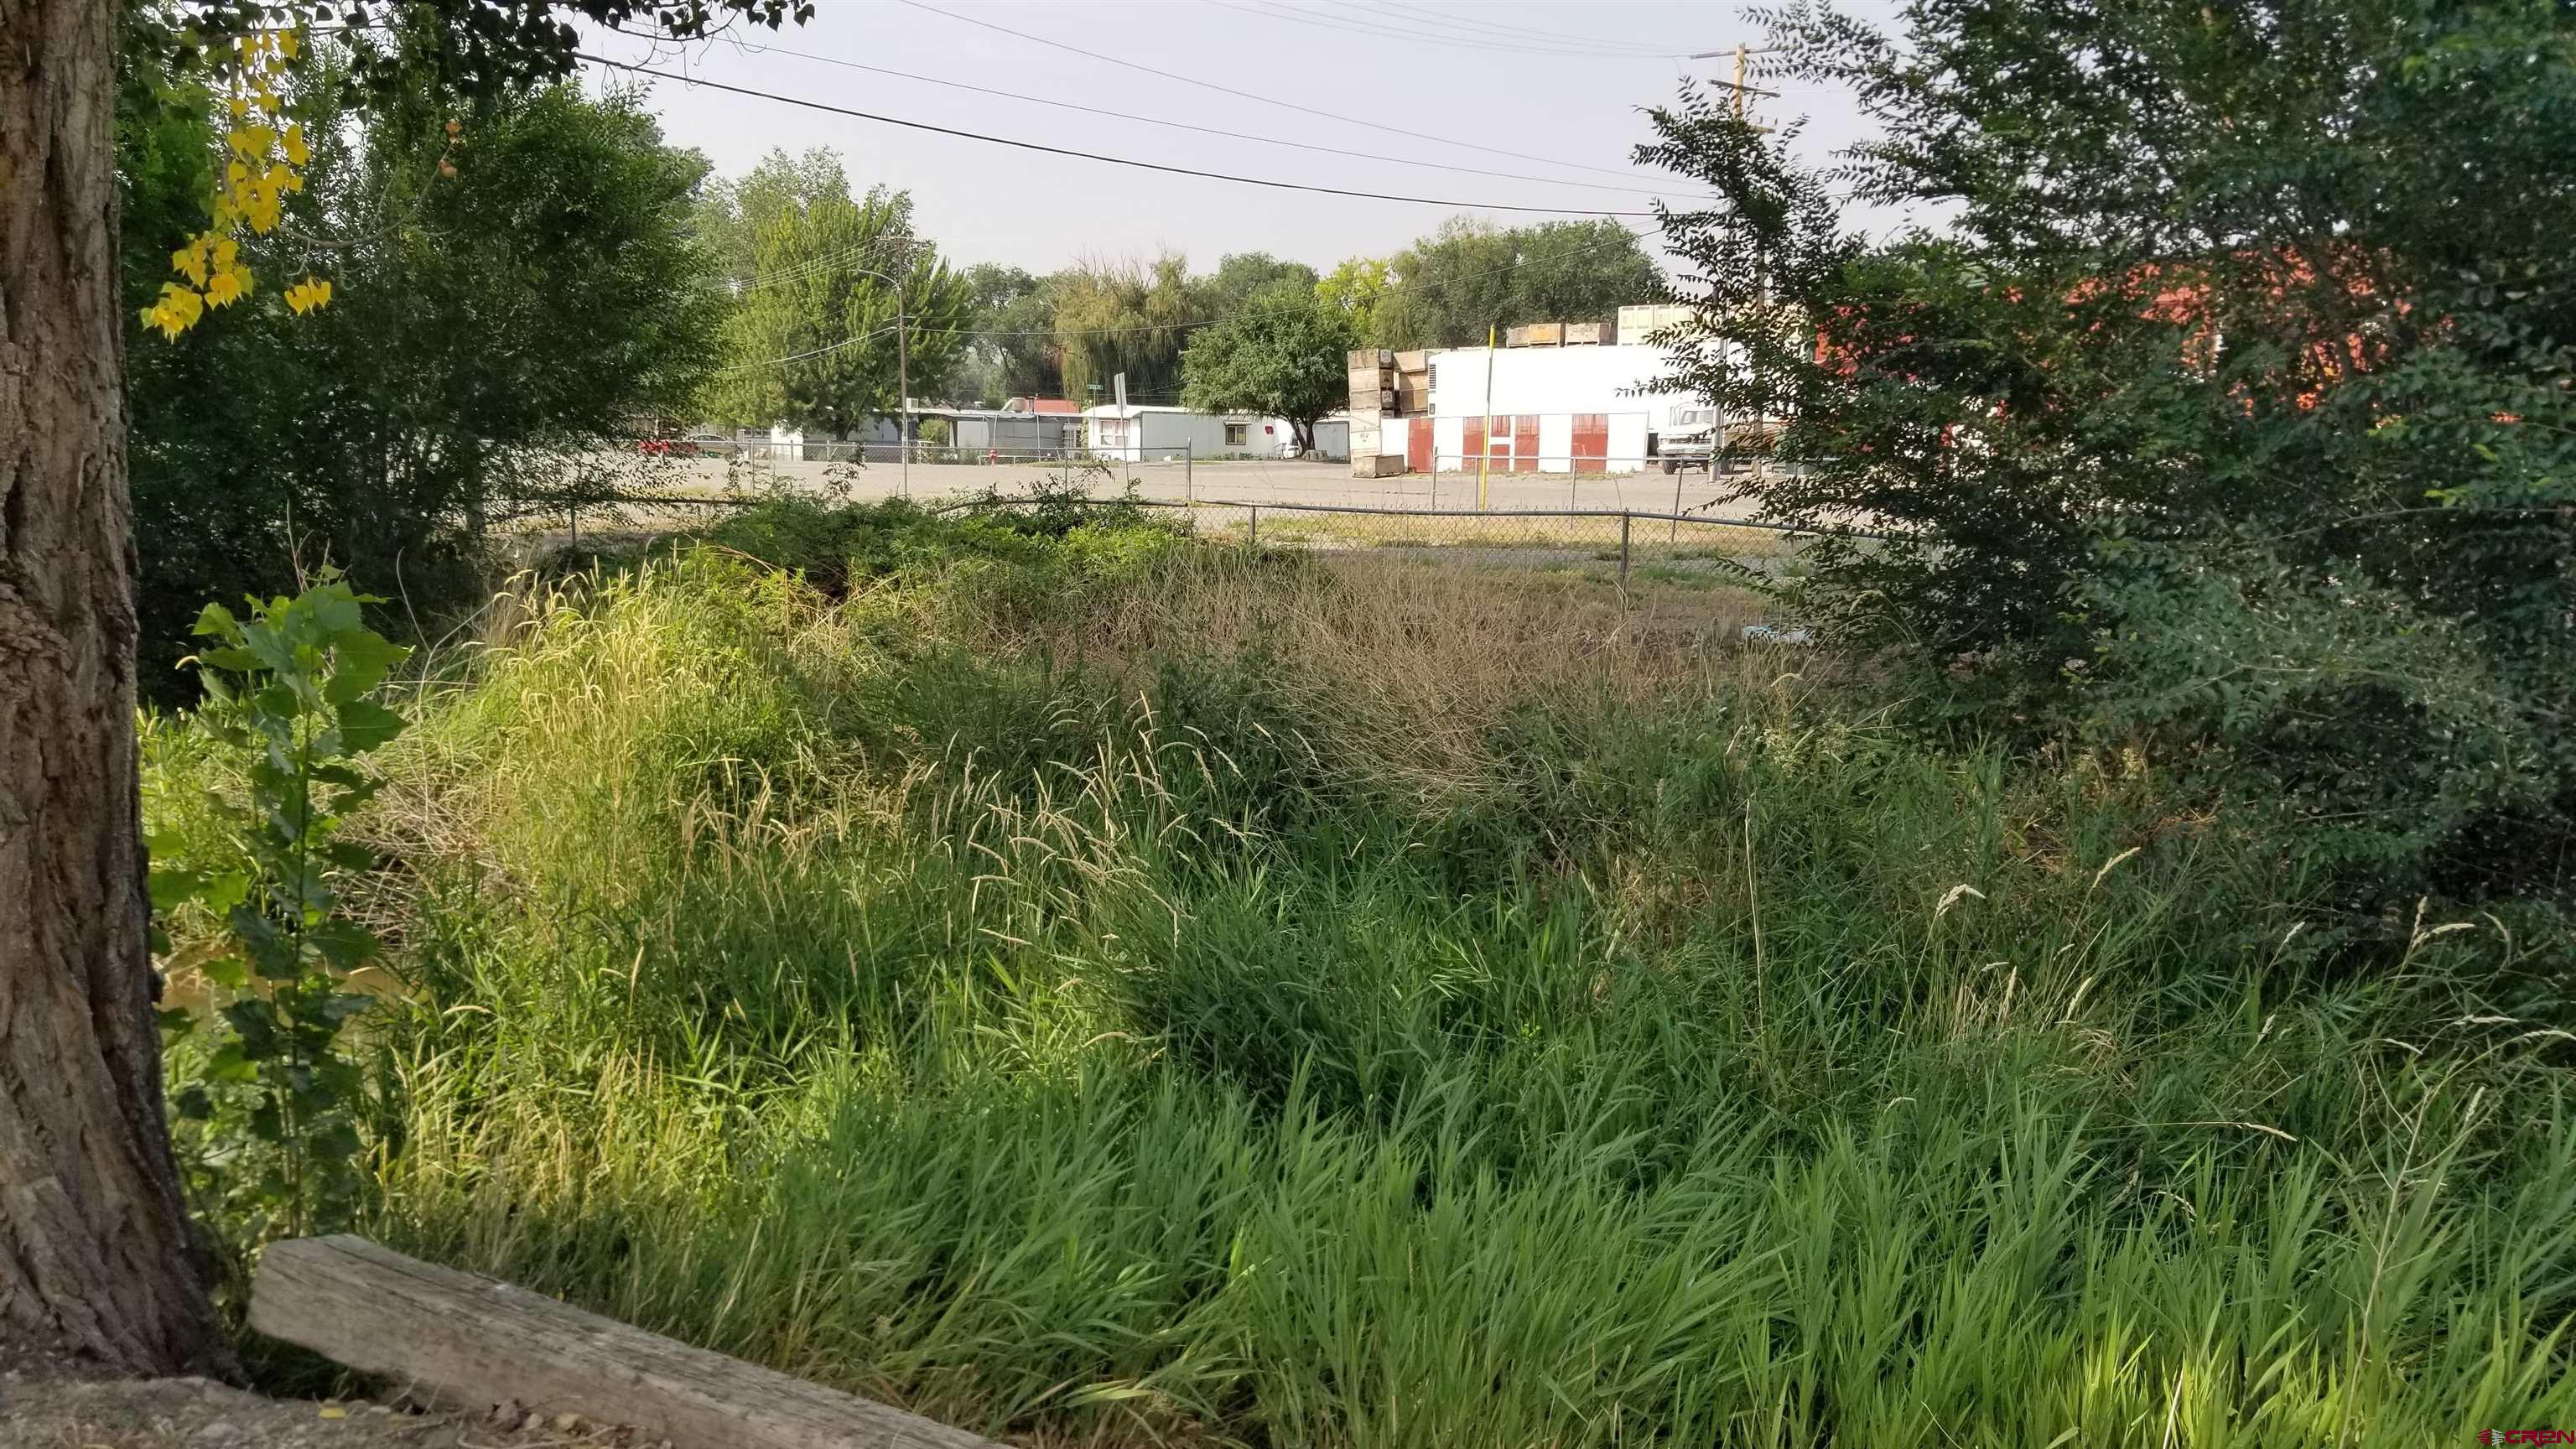 """Vacant lot in Town of Hotchkiss with great opportunity. Total of .35 acres, part of the lot is cleared and flat and the other portion is lush with trees and foliage. There are no known rights to the irrigation water but you can enjoy the shade from the trees and sound of the running water from the ditch that runs through the property. Walking distance to restaurants, grocery, farmer's market and more. ****Property is zoned Residential/Mixed Use and might have potential for a tiny home*******SELLER FINANCING AVAILABLE**** Utilities nearby. Town of Hotchkiss motto is """"The Friendliest Town Around"""". Come and see for yourself and let's figure out what you can do with this lot."""